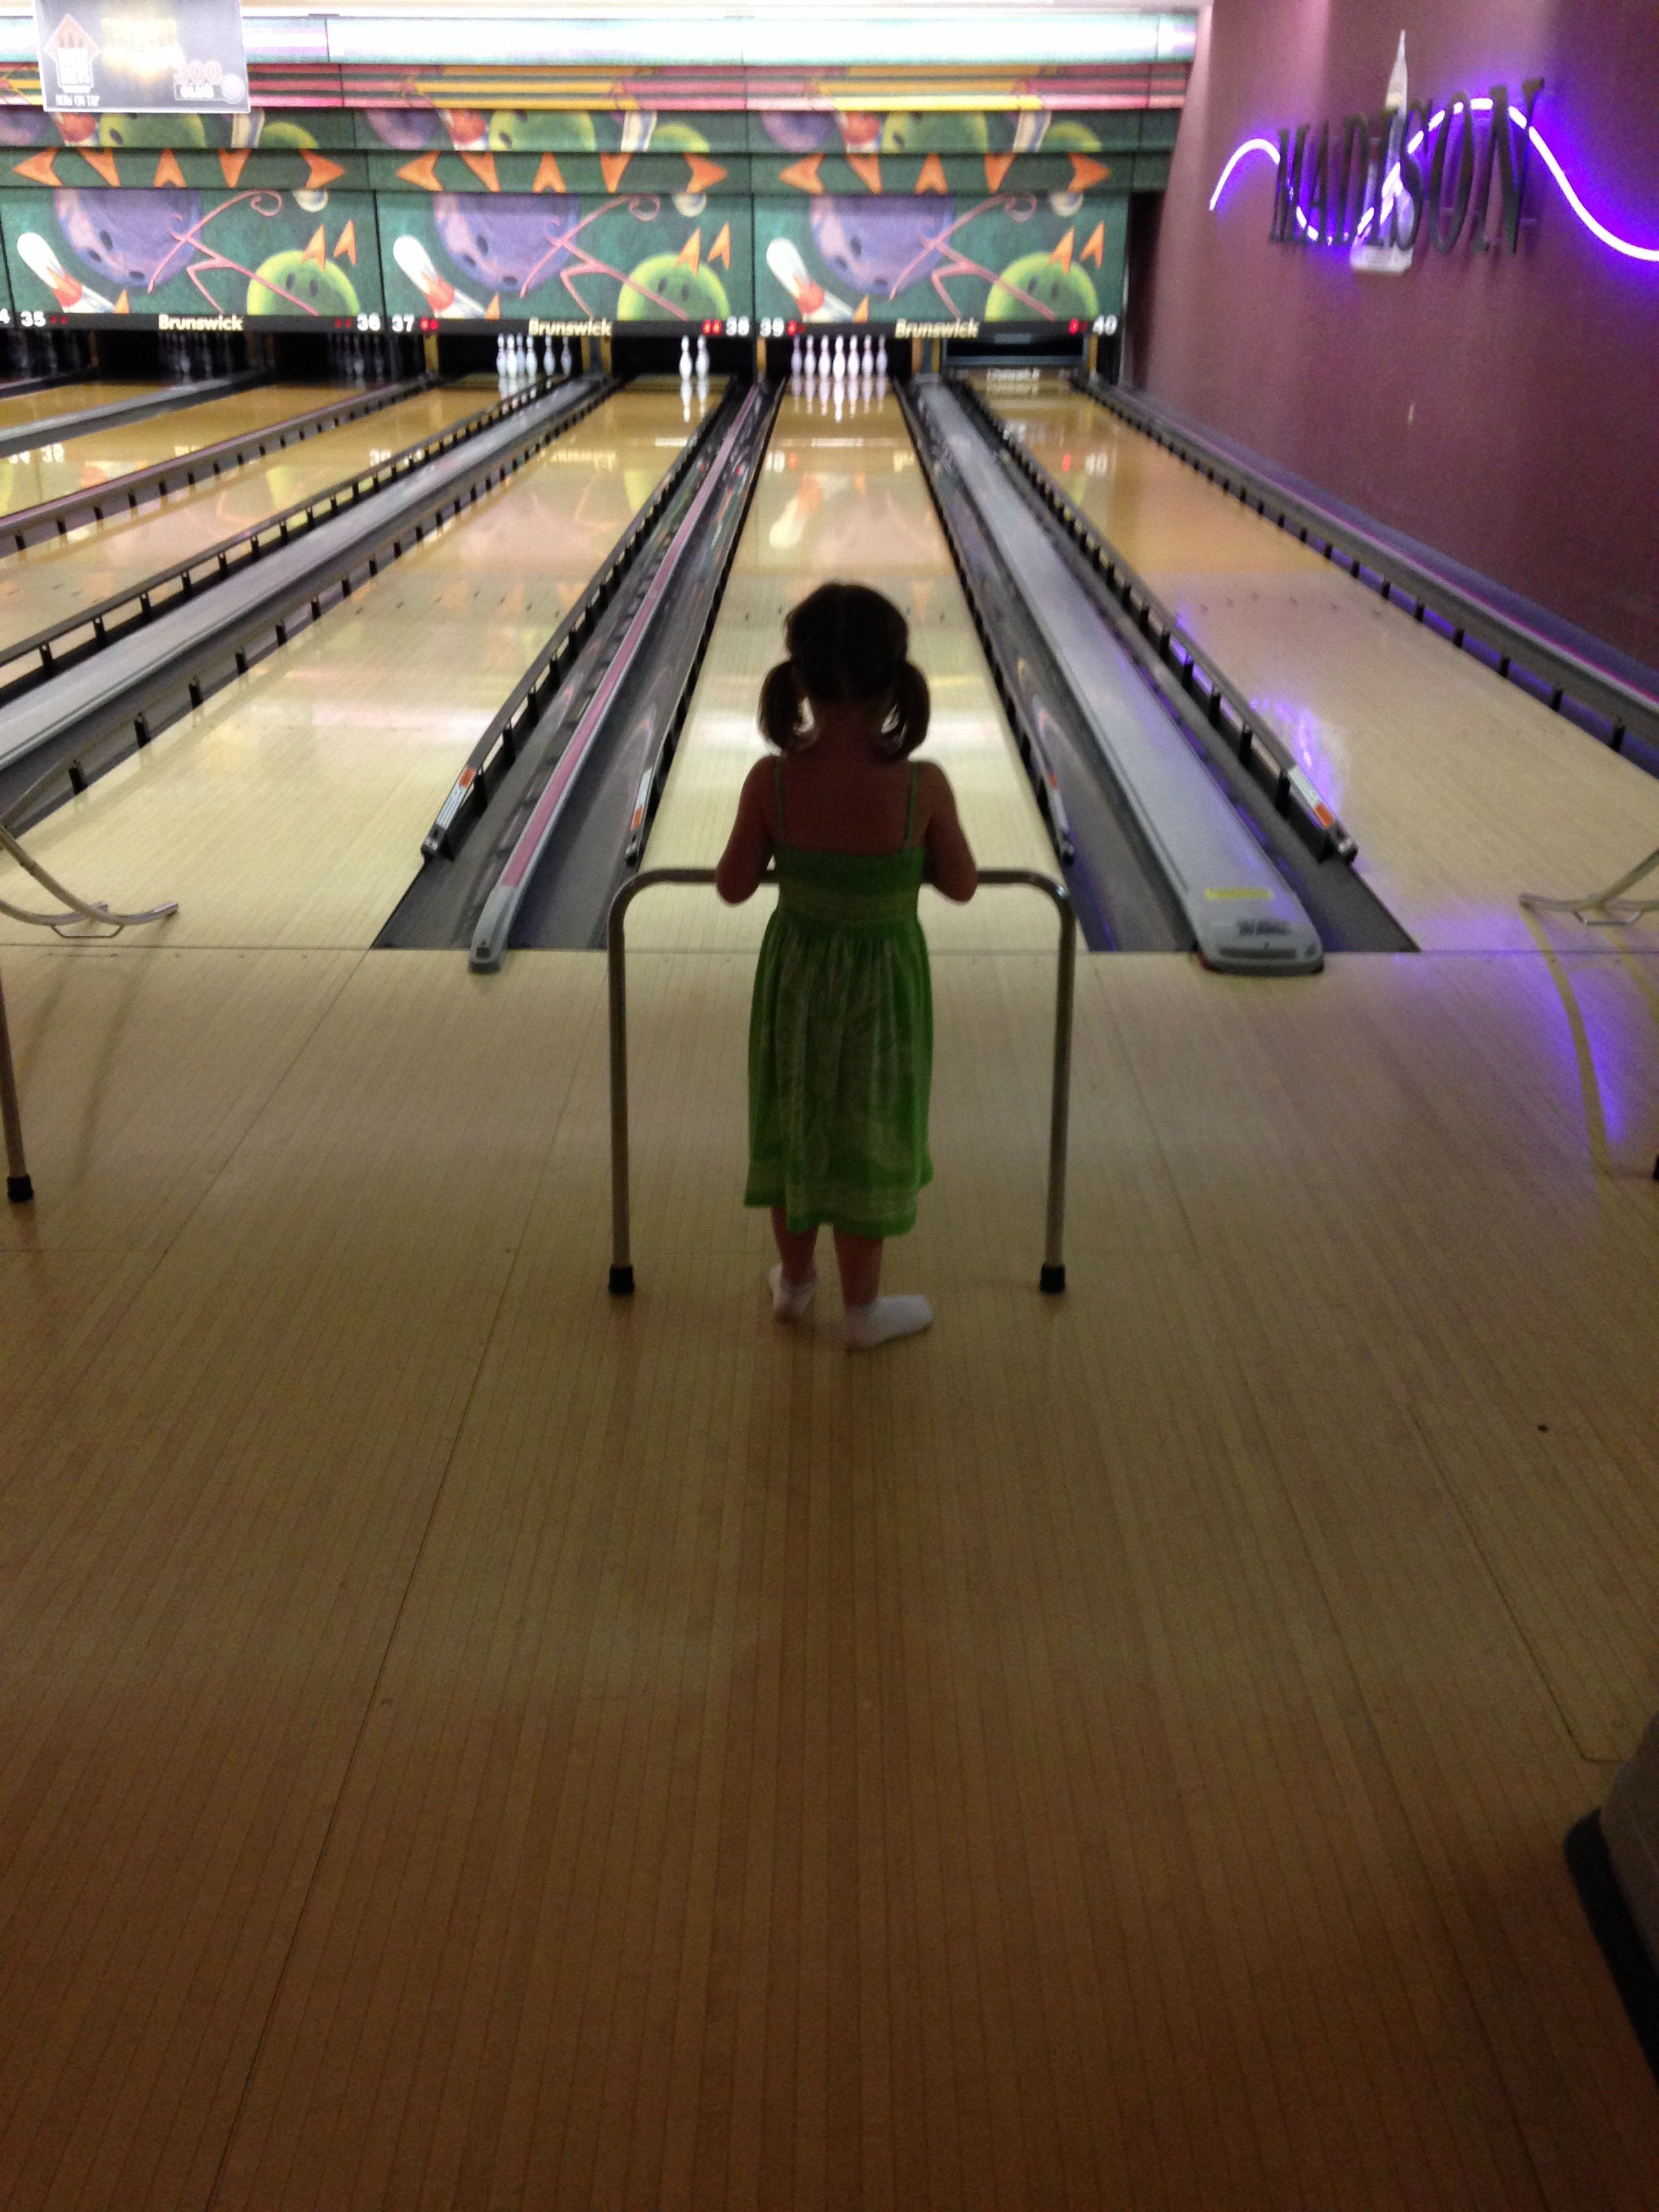 BIRTHDAY PARTIES By Bowl A Vard Lanes BOWL VARD LANES 2121 E SPRINGS DR MADISON WI 53704 608 244